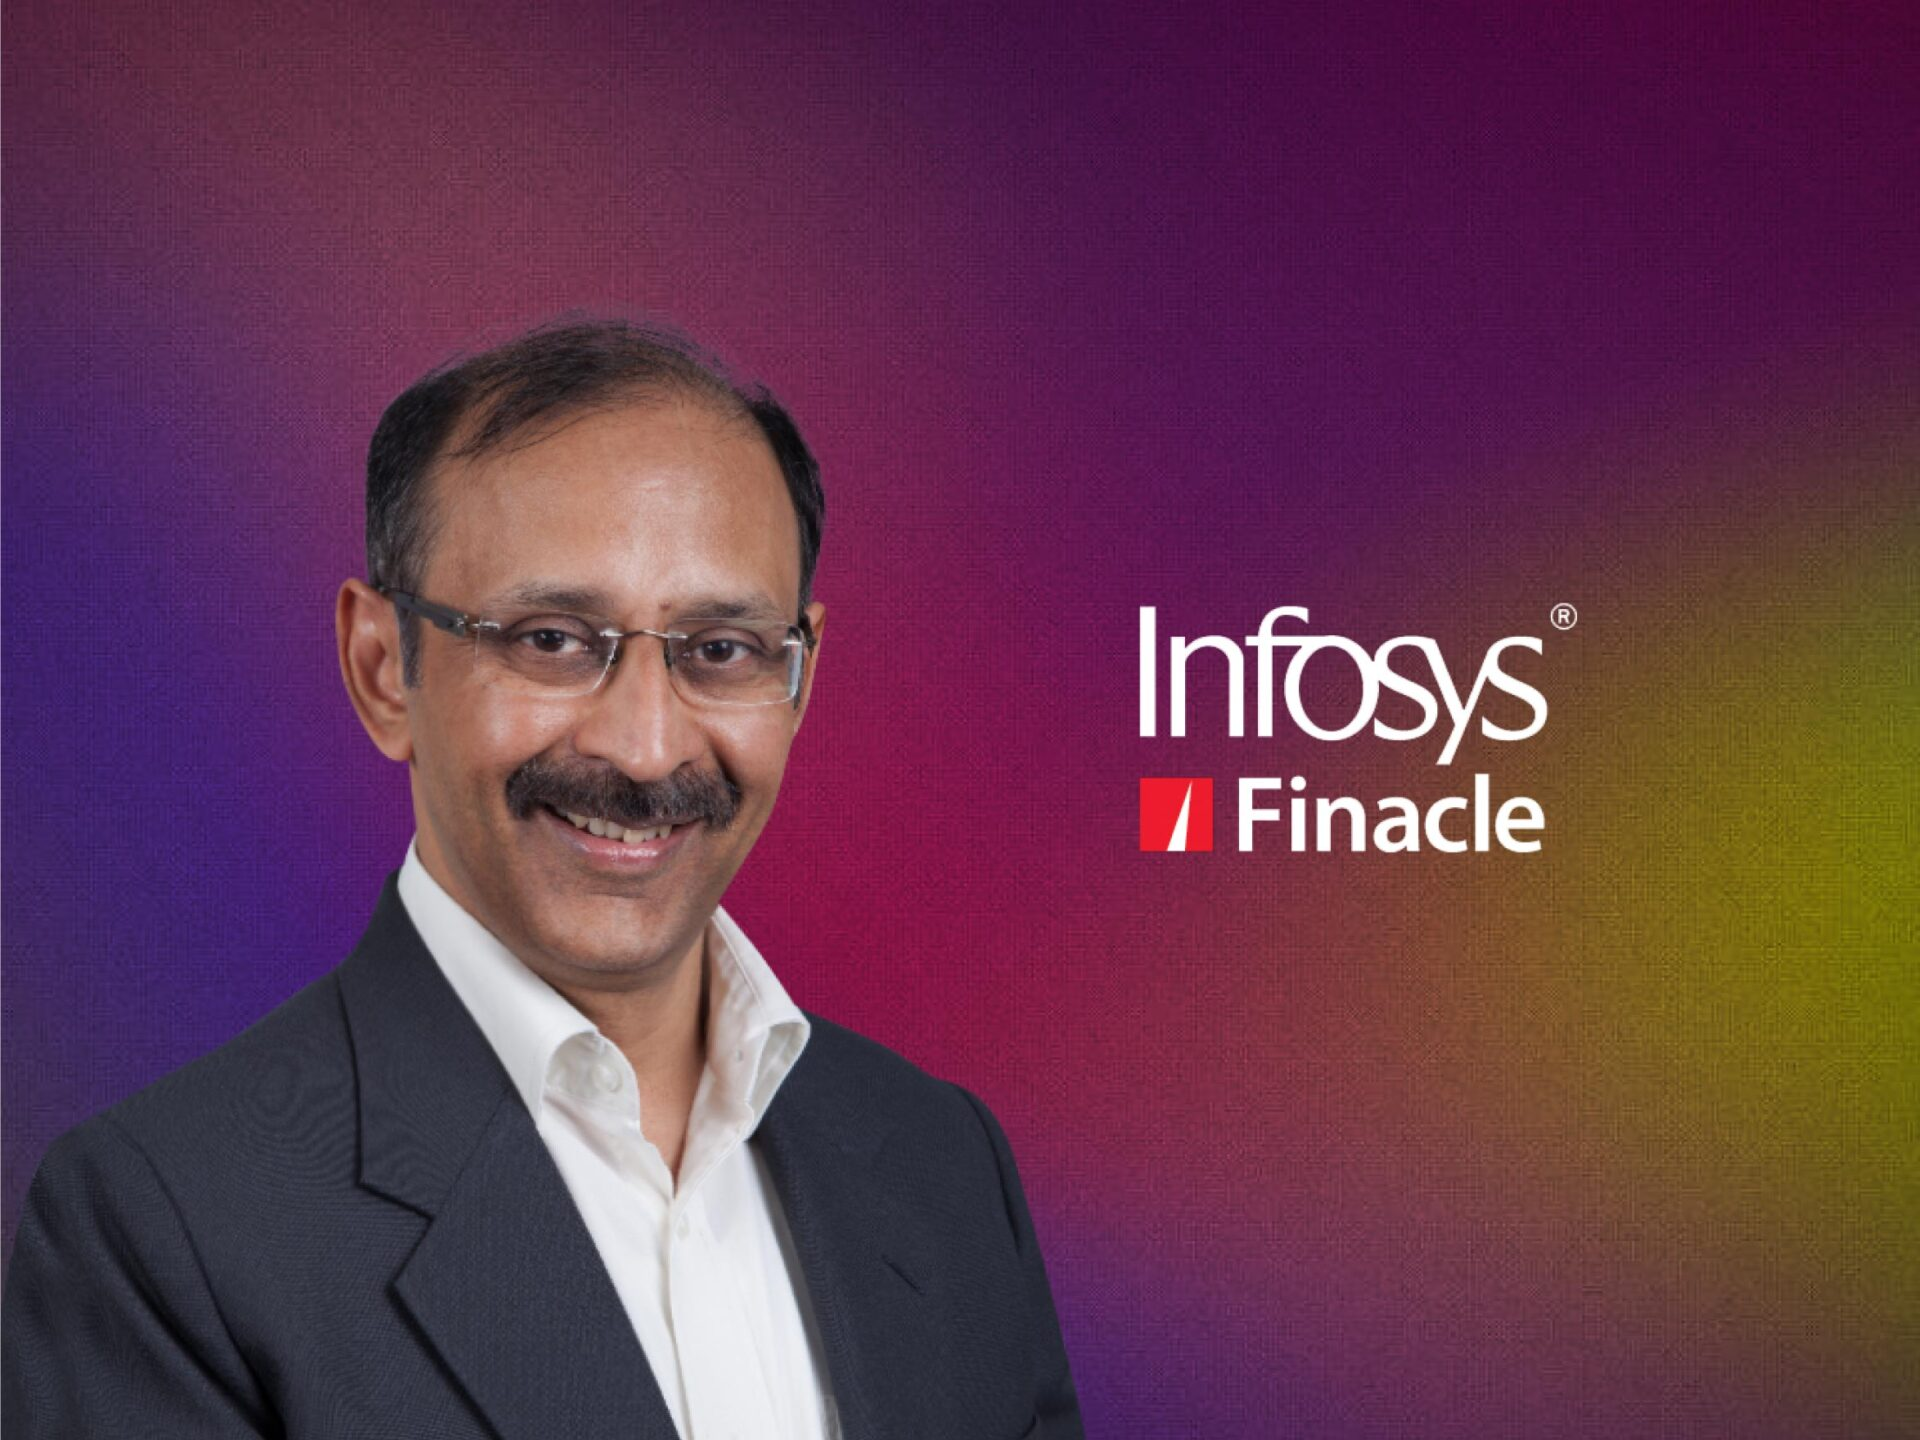 Global Fintech Interview with Arun Krishnan, SVP and Head of Engineering at Infosys Finacle